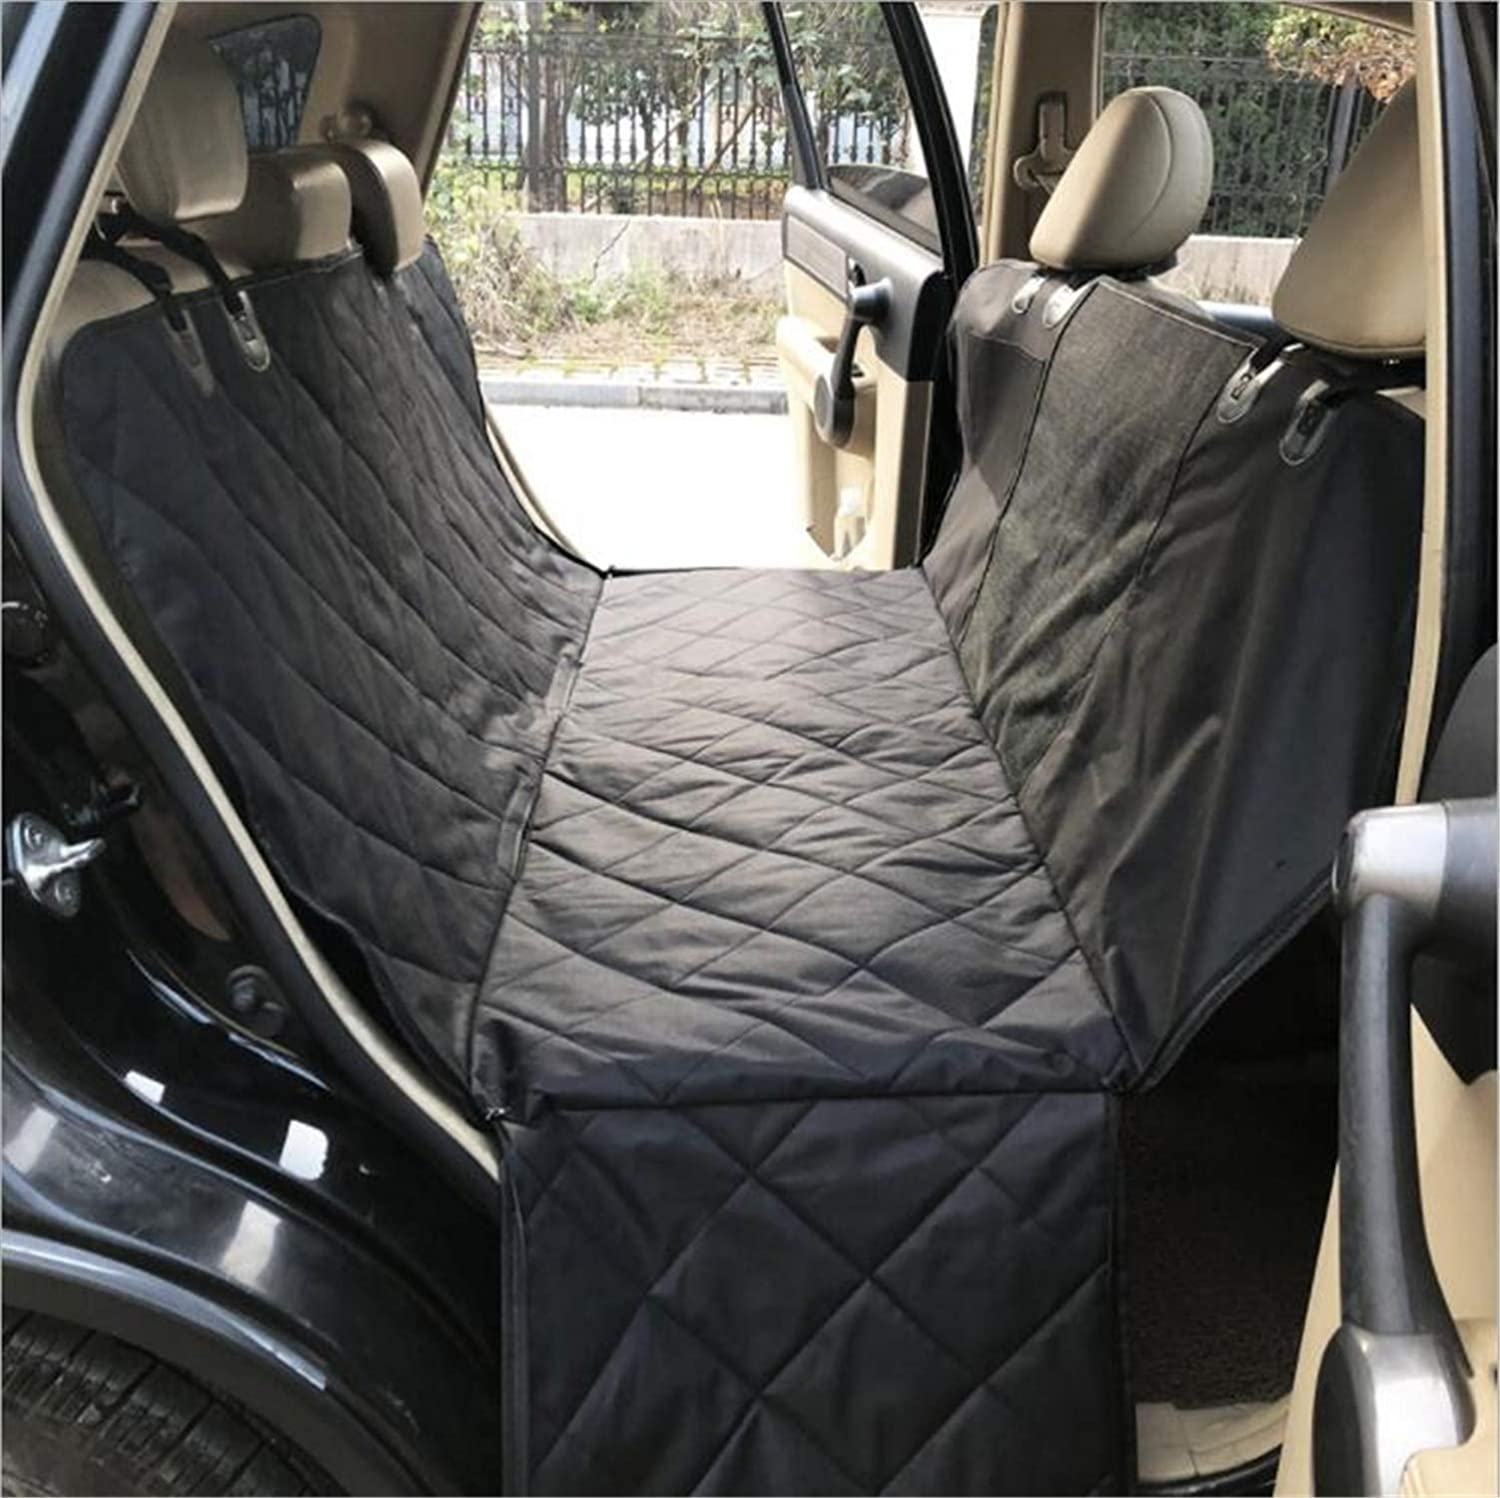 Dog Seat Covers,with Mesh Pocket and Two Storage Pockets,Visible Window,Hammock Back Seat Travel Cover,Universal Fits All Cars (Black)